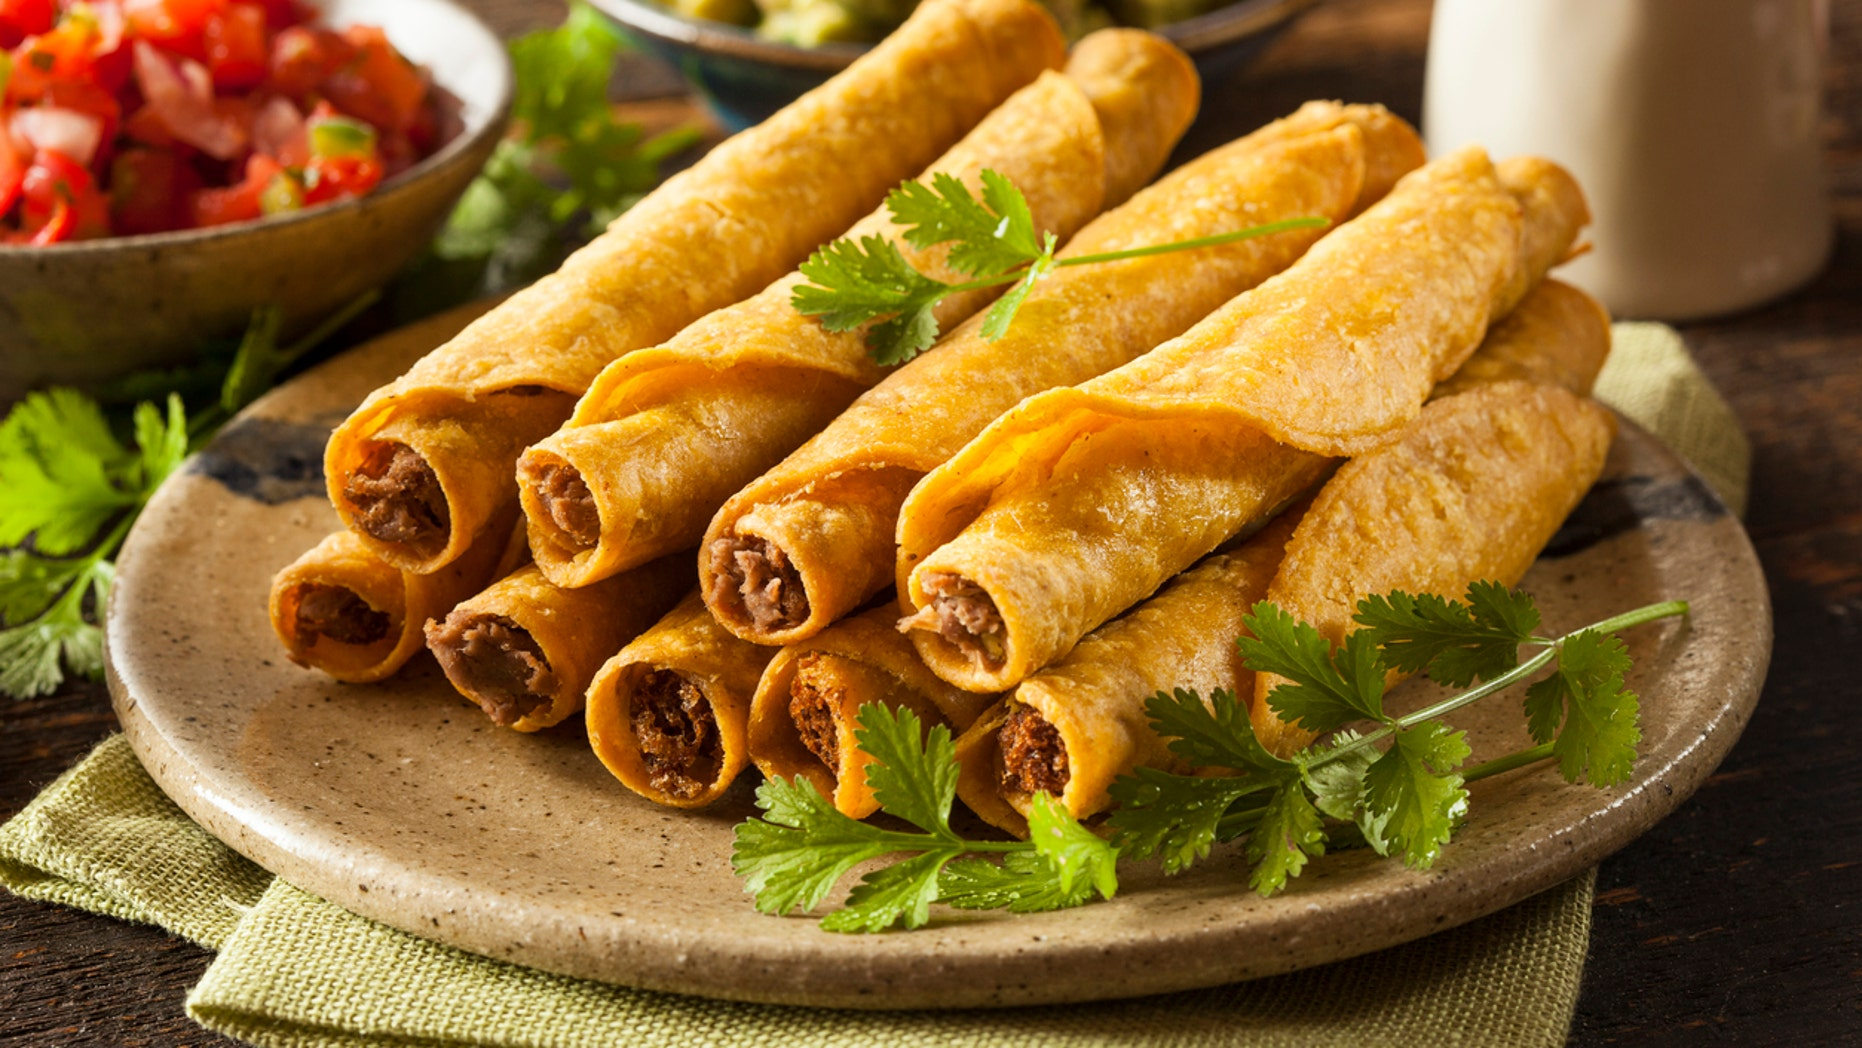 More than 2 million pounds of taquitos being recalled